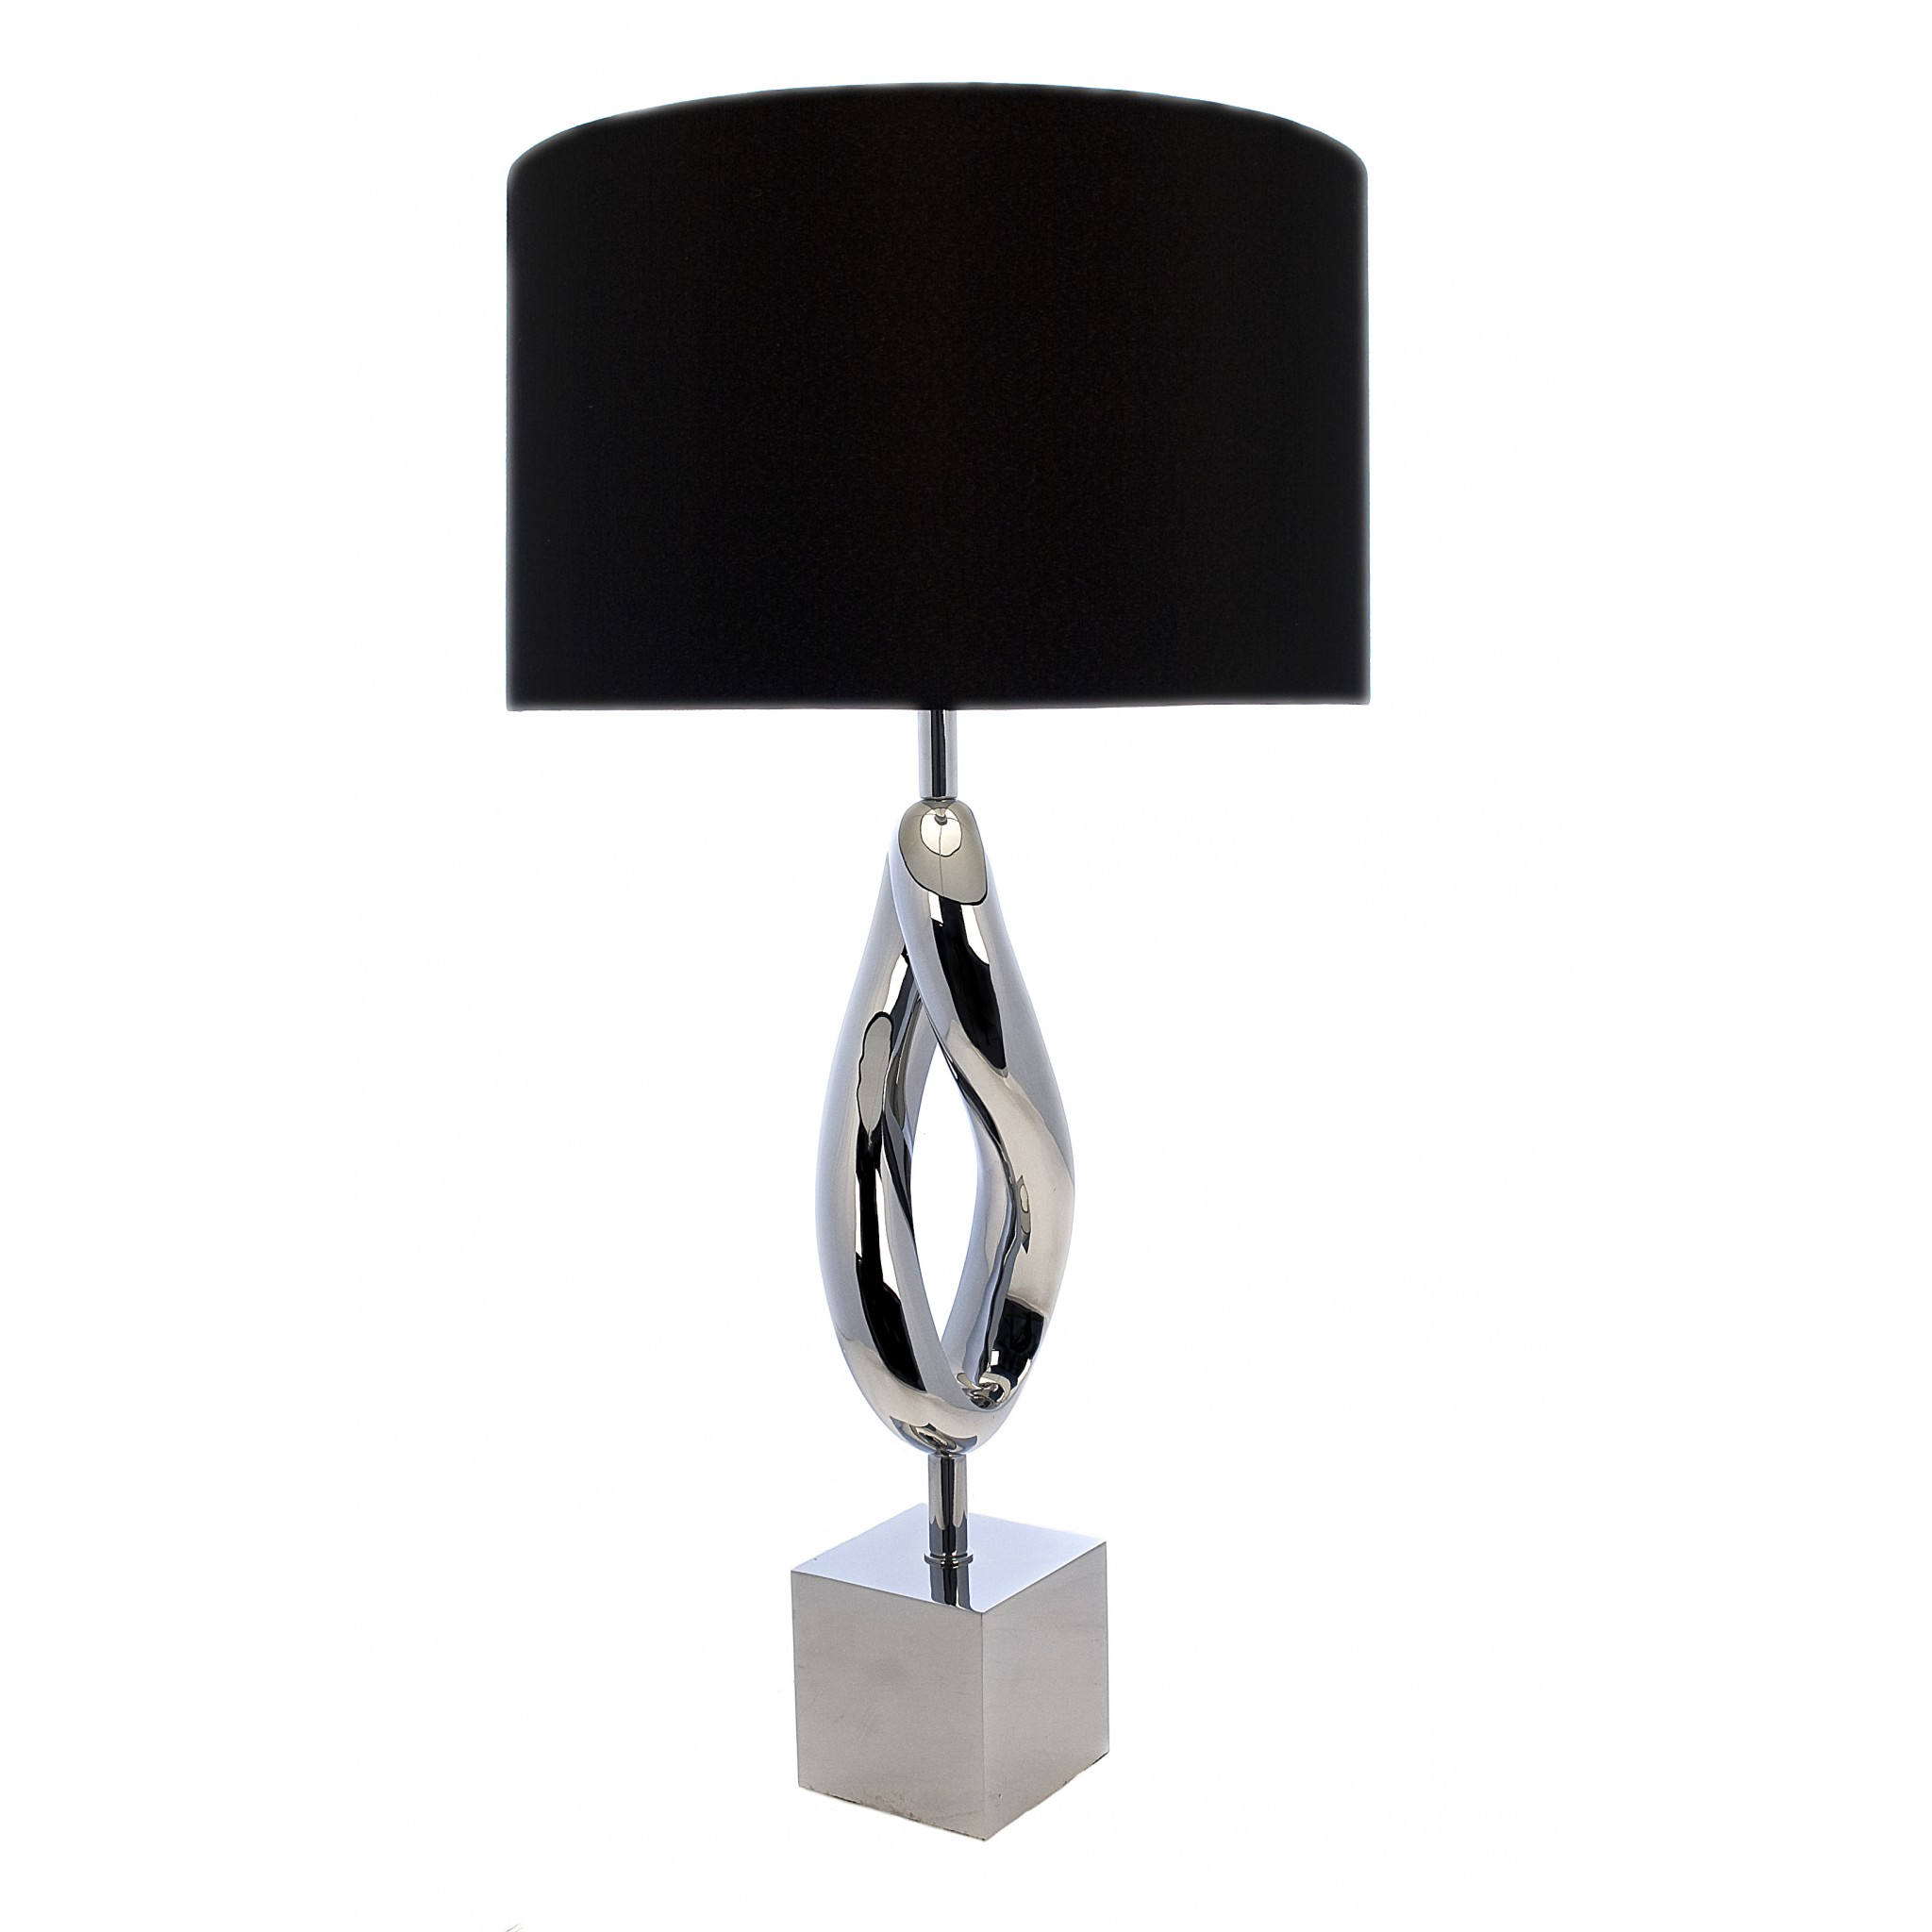 Photo of Rv astley abril twist table lamp